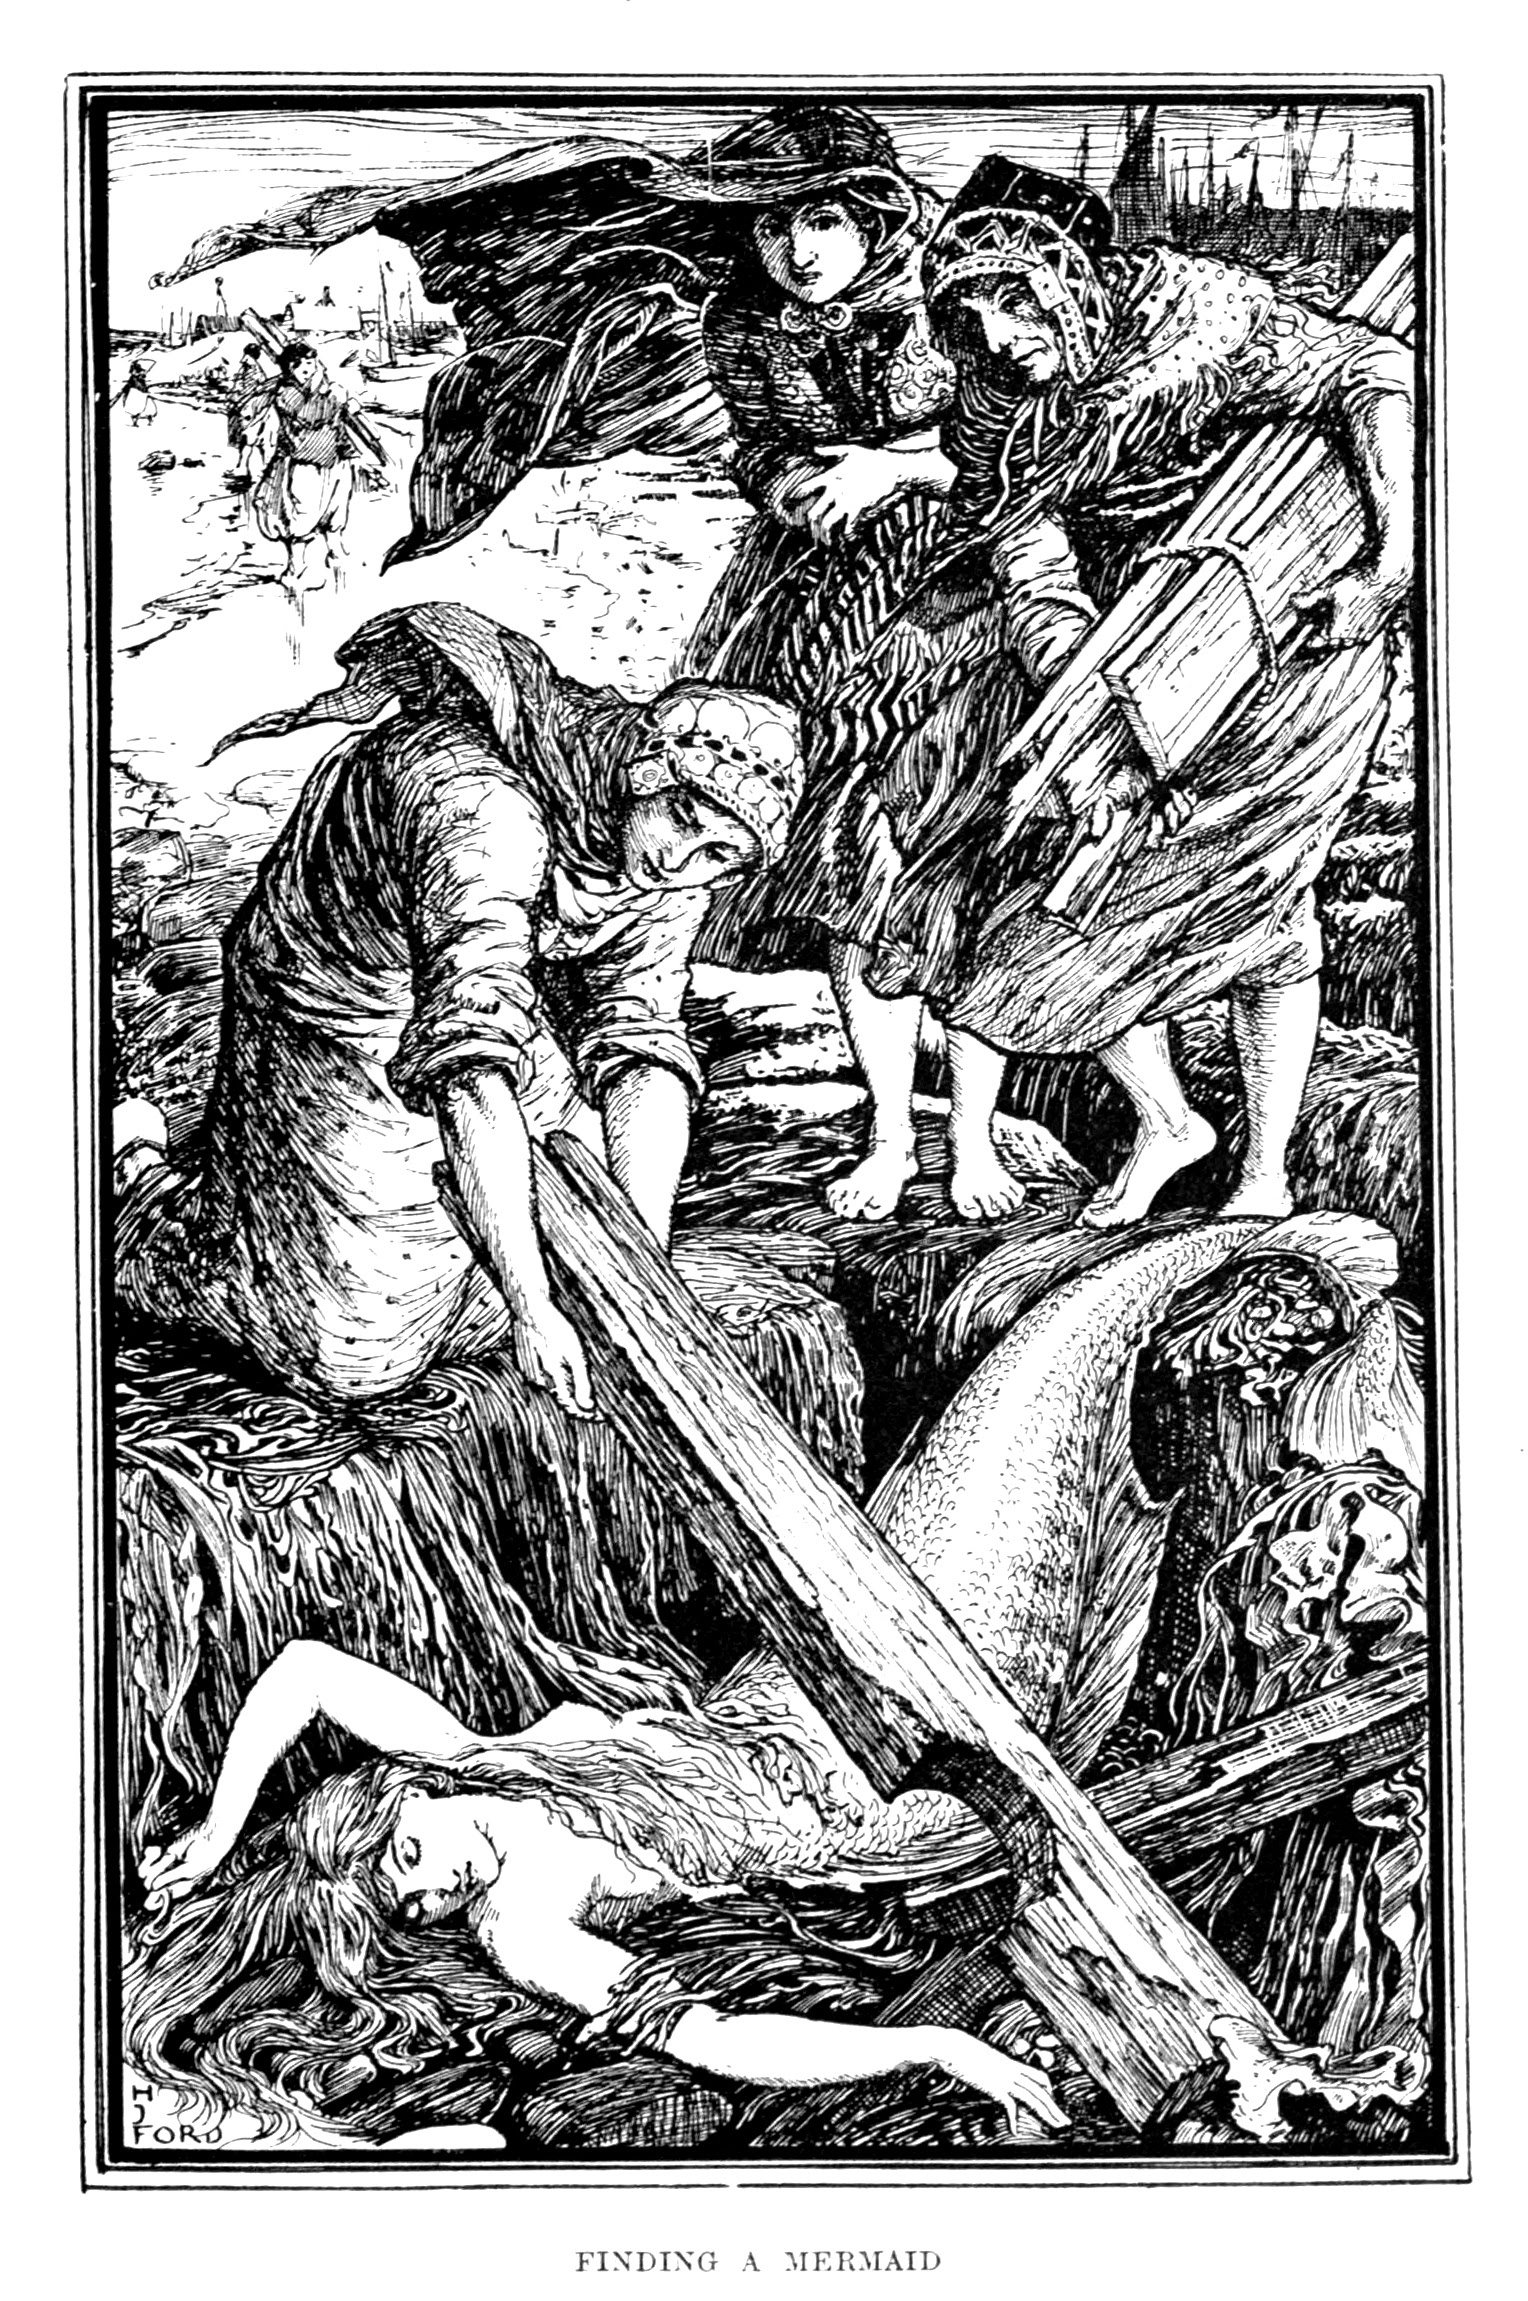 Henry Justice Ford - The red book of animal stories selected and edited by Andrew Lang, 1899 (illustration 3)